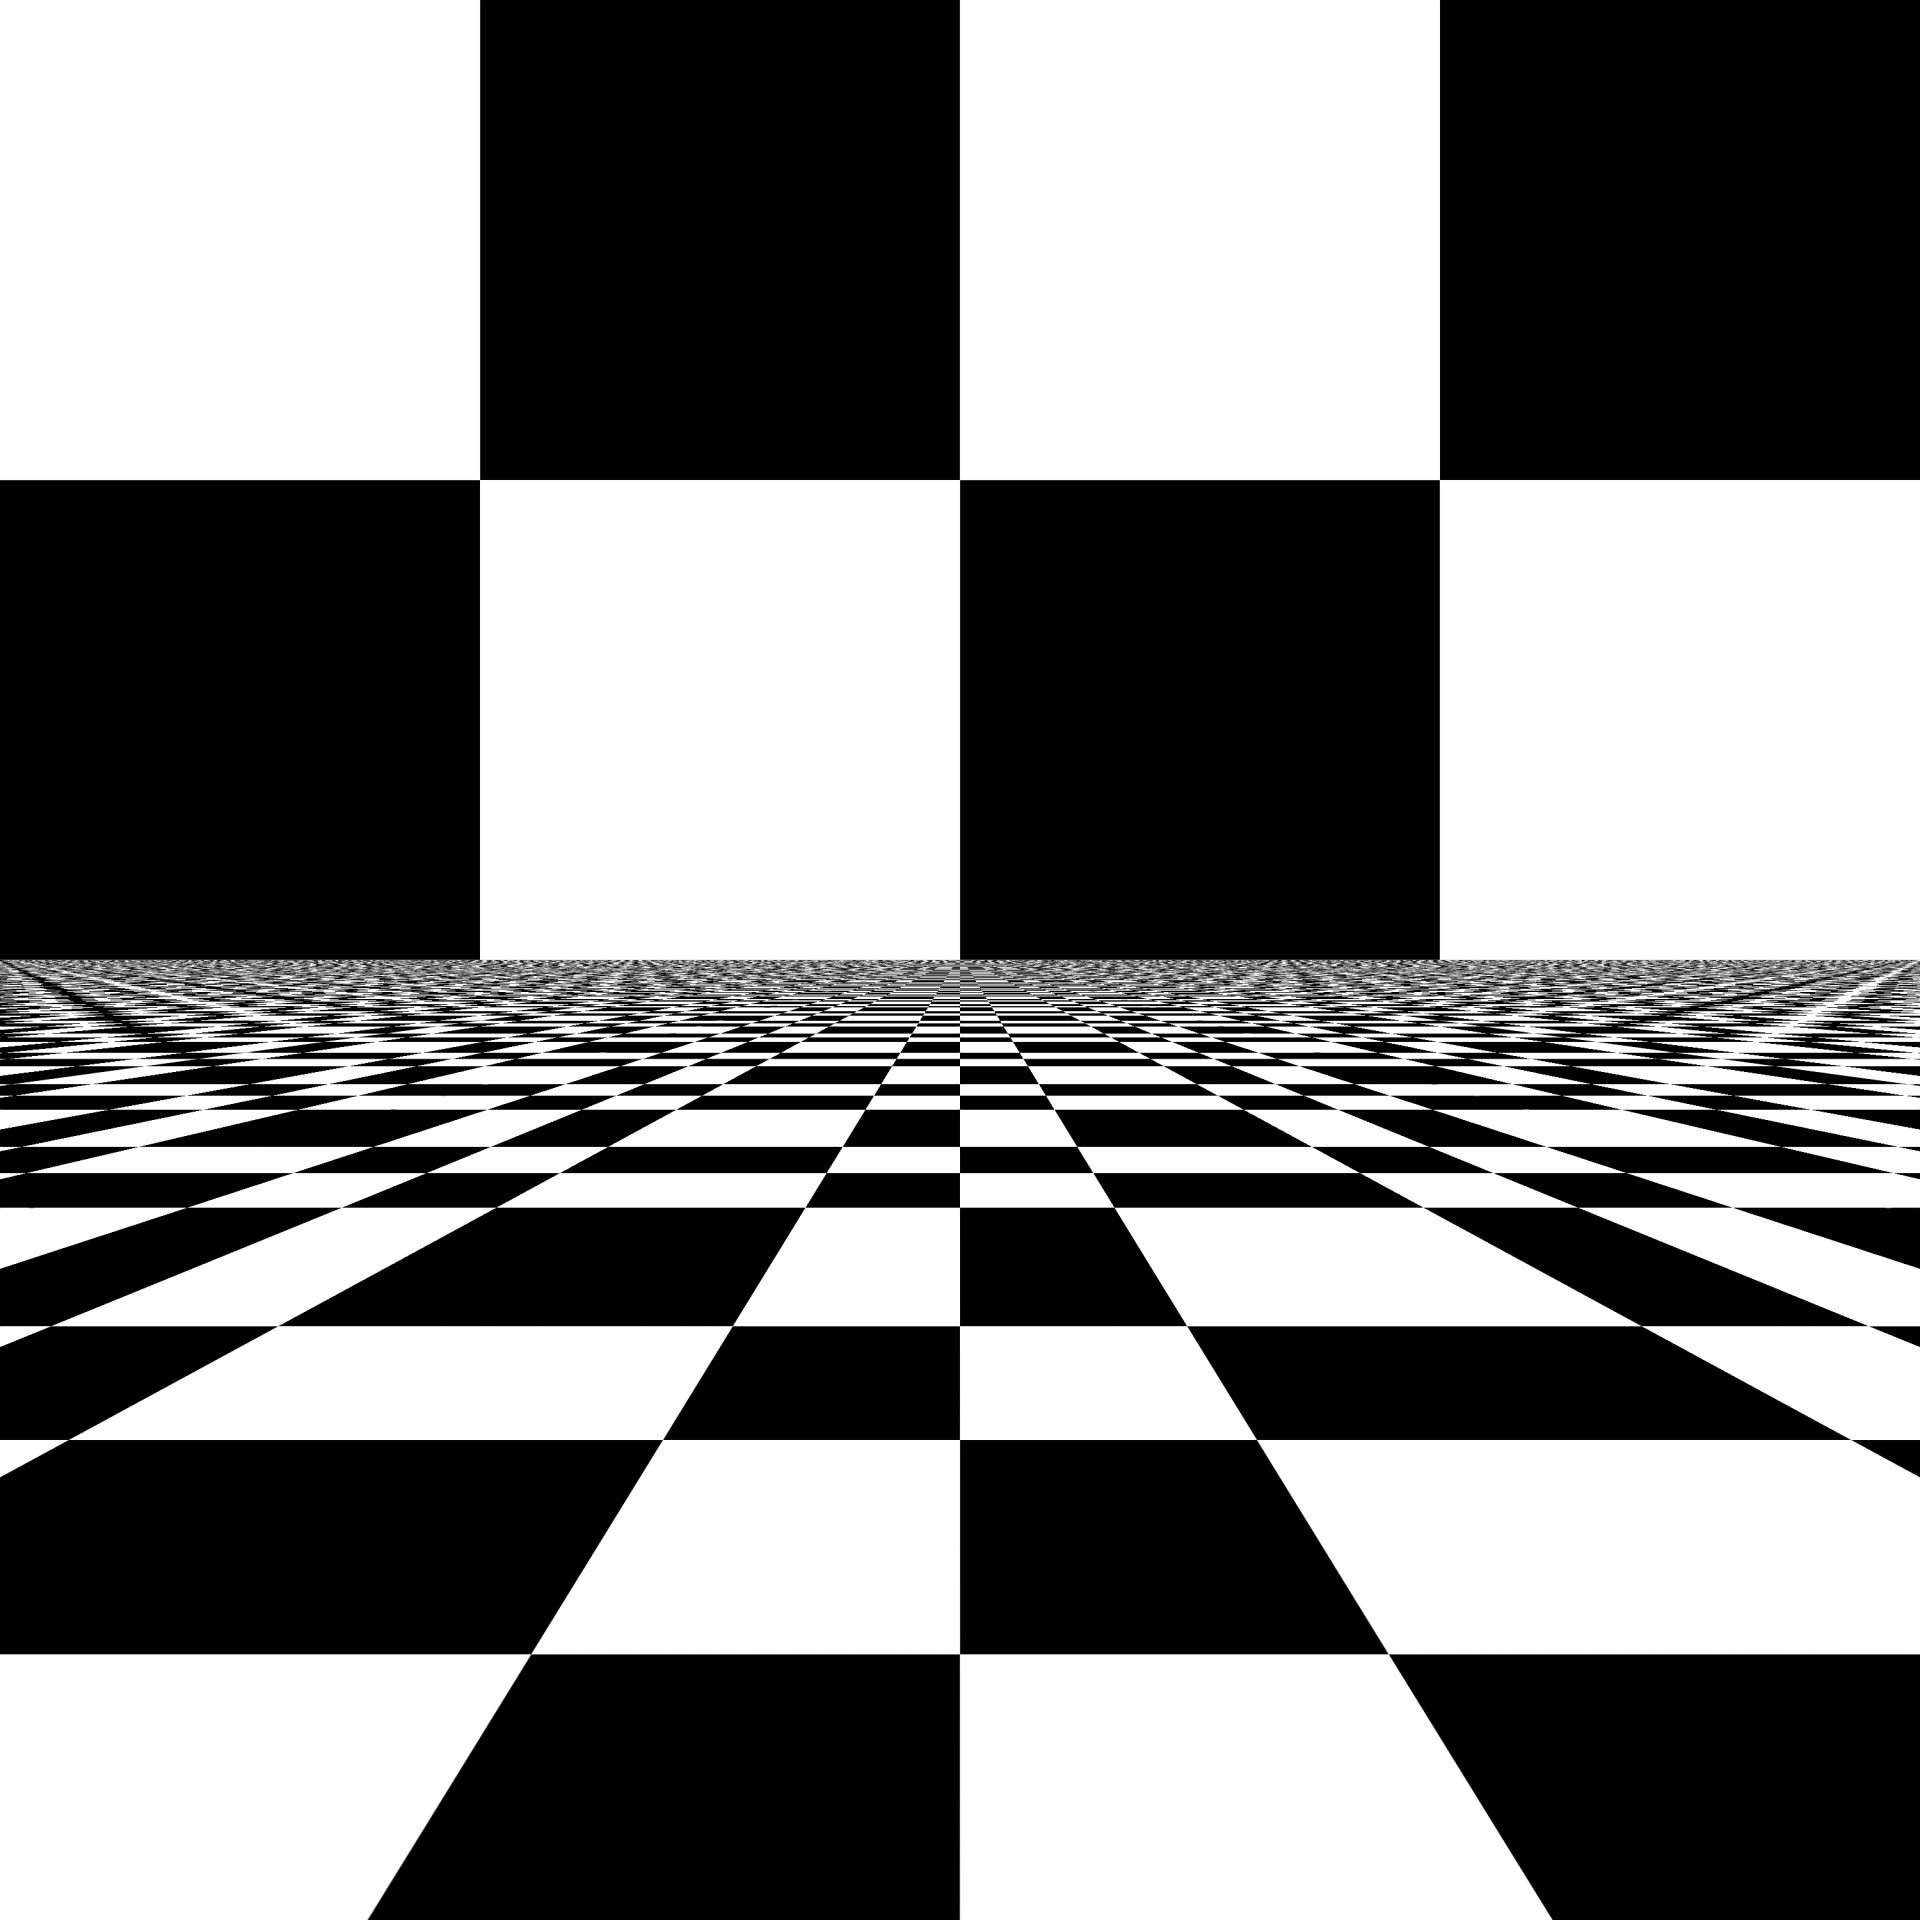 Perspective Checkerboard Free Stock Photo  Public Domain